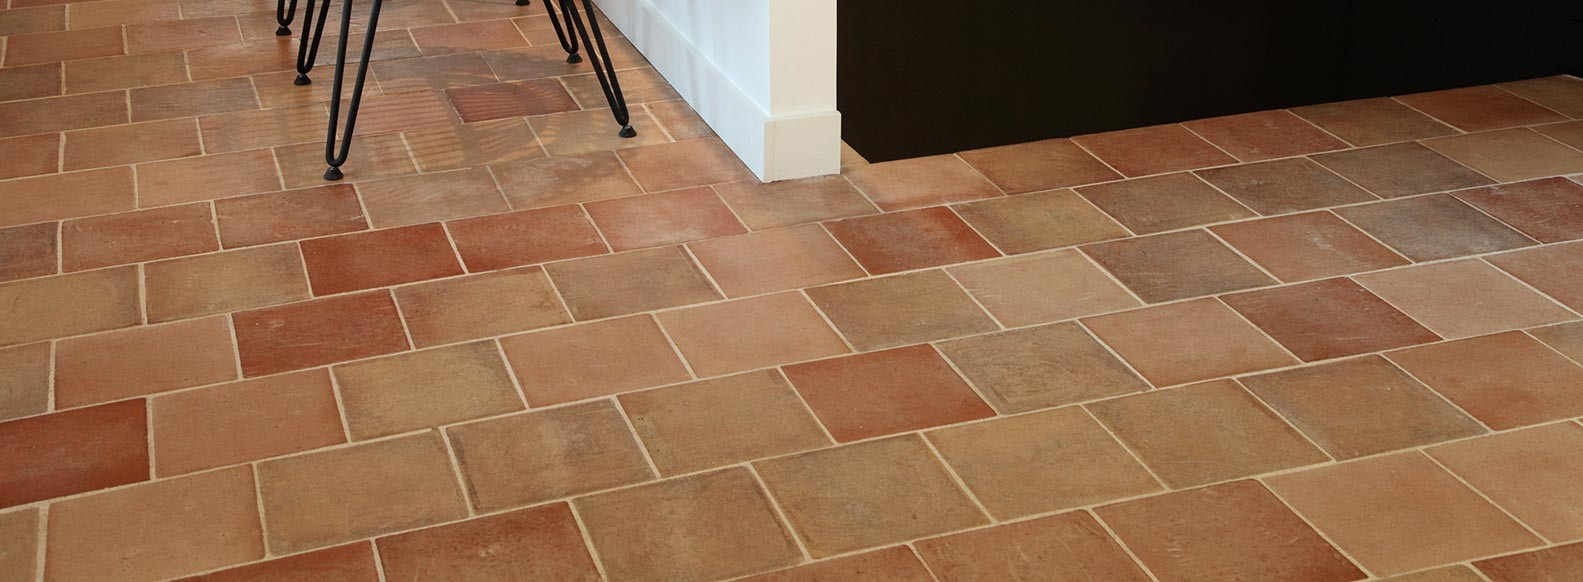 Tomette tiles, a natural material